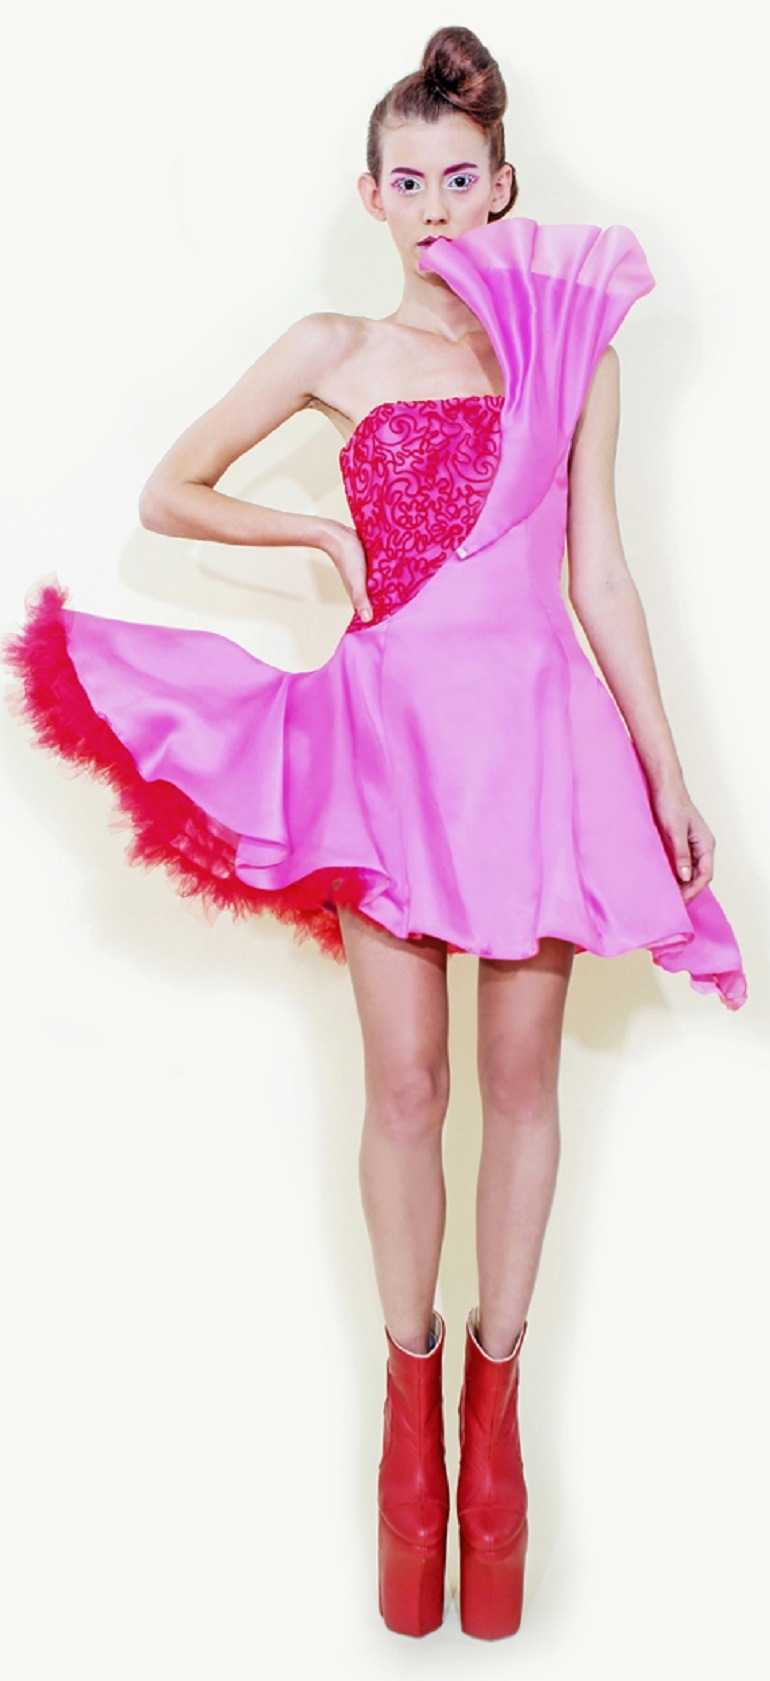 Image: A beautiful dress designed by Long Tran, the fashion designer for celebrities blend art with fashion